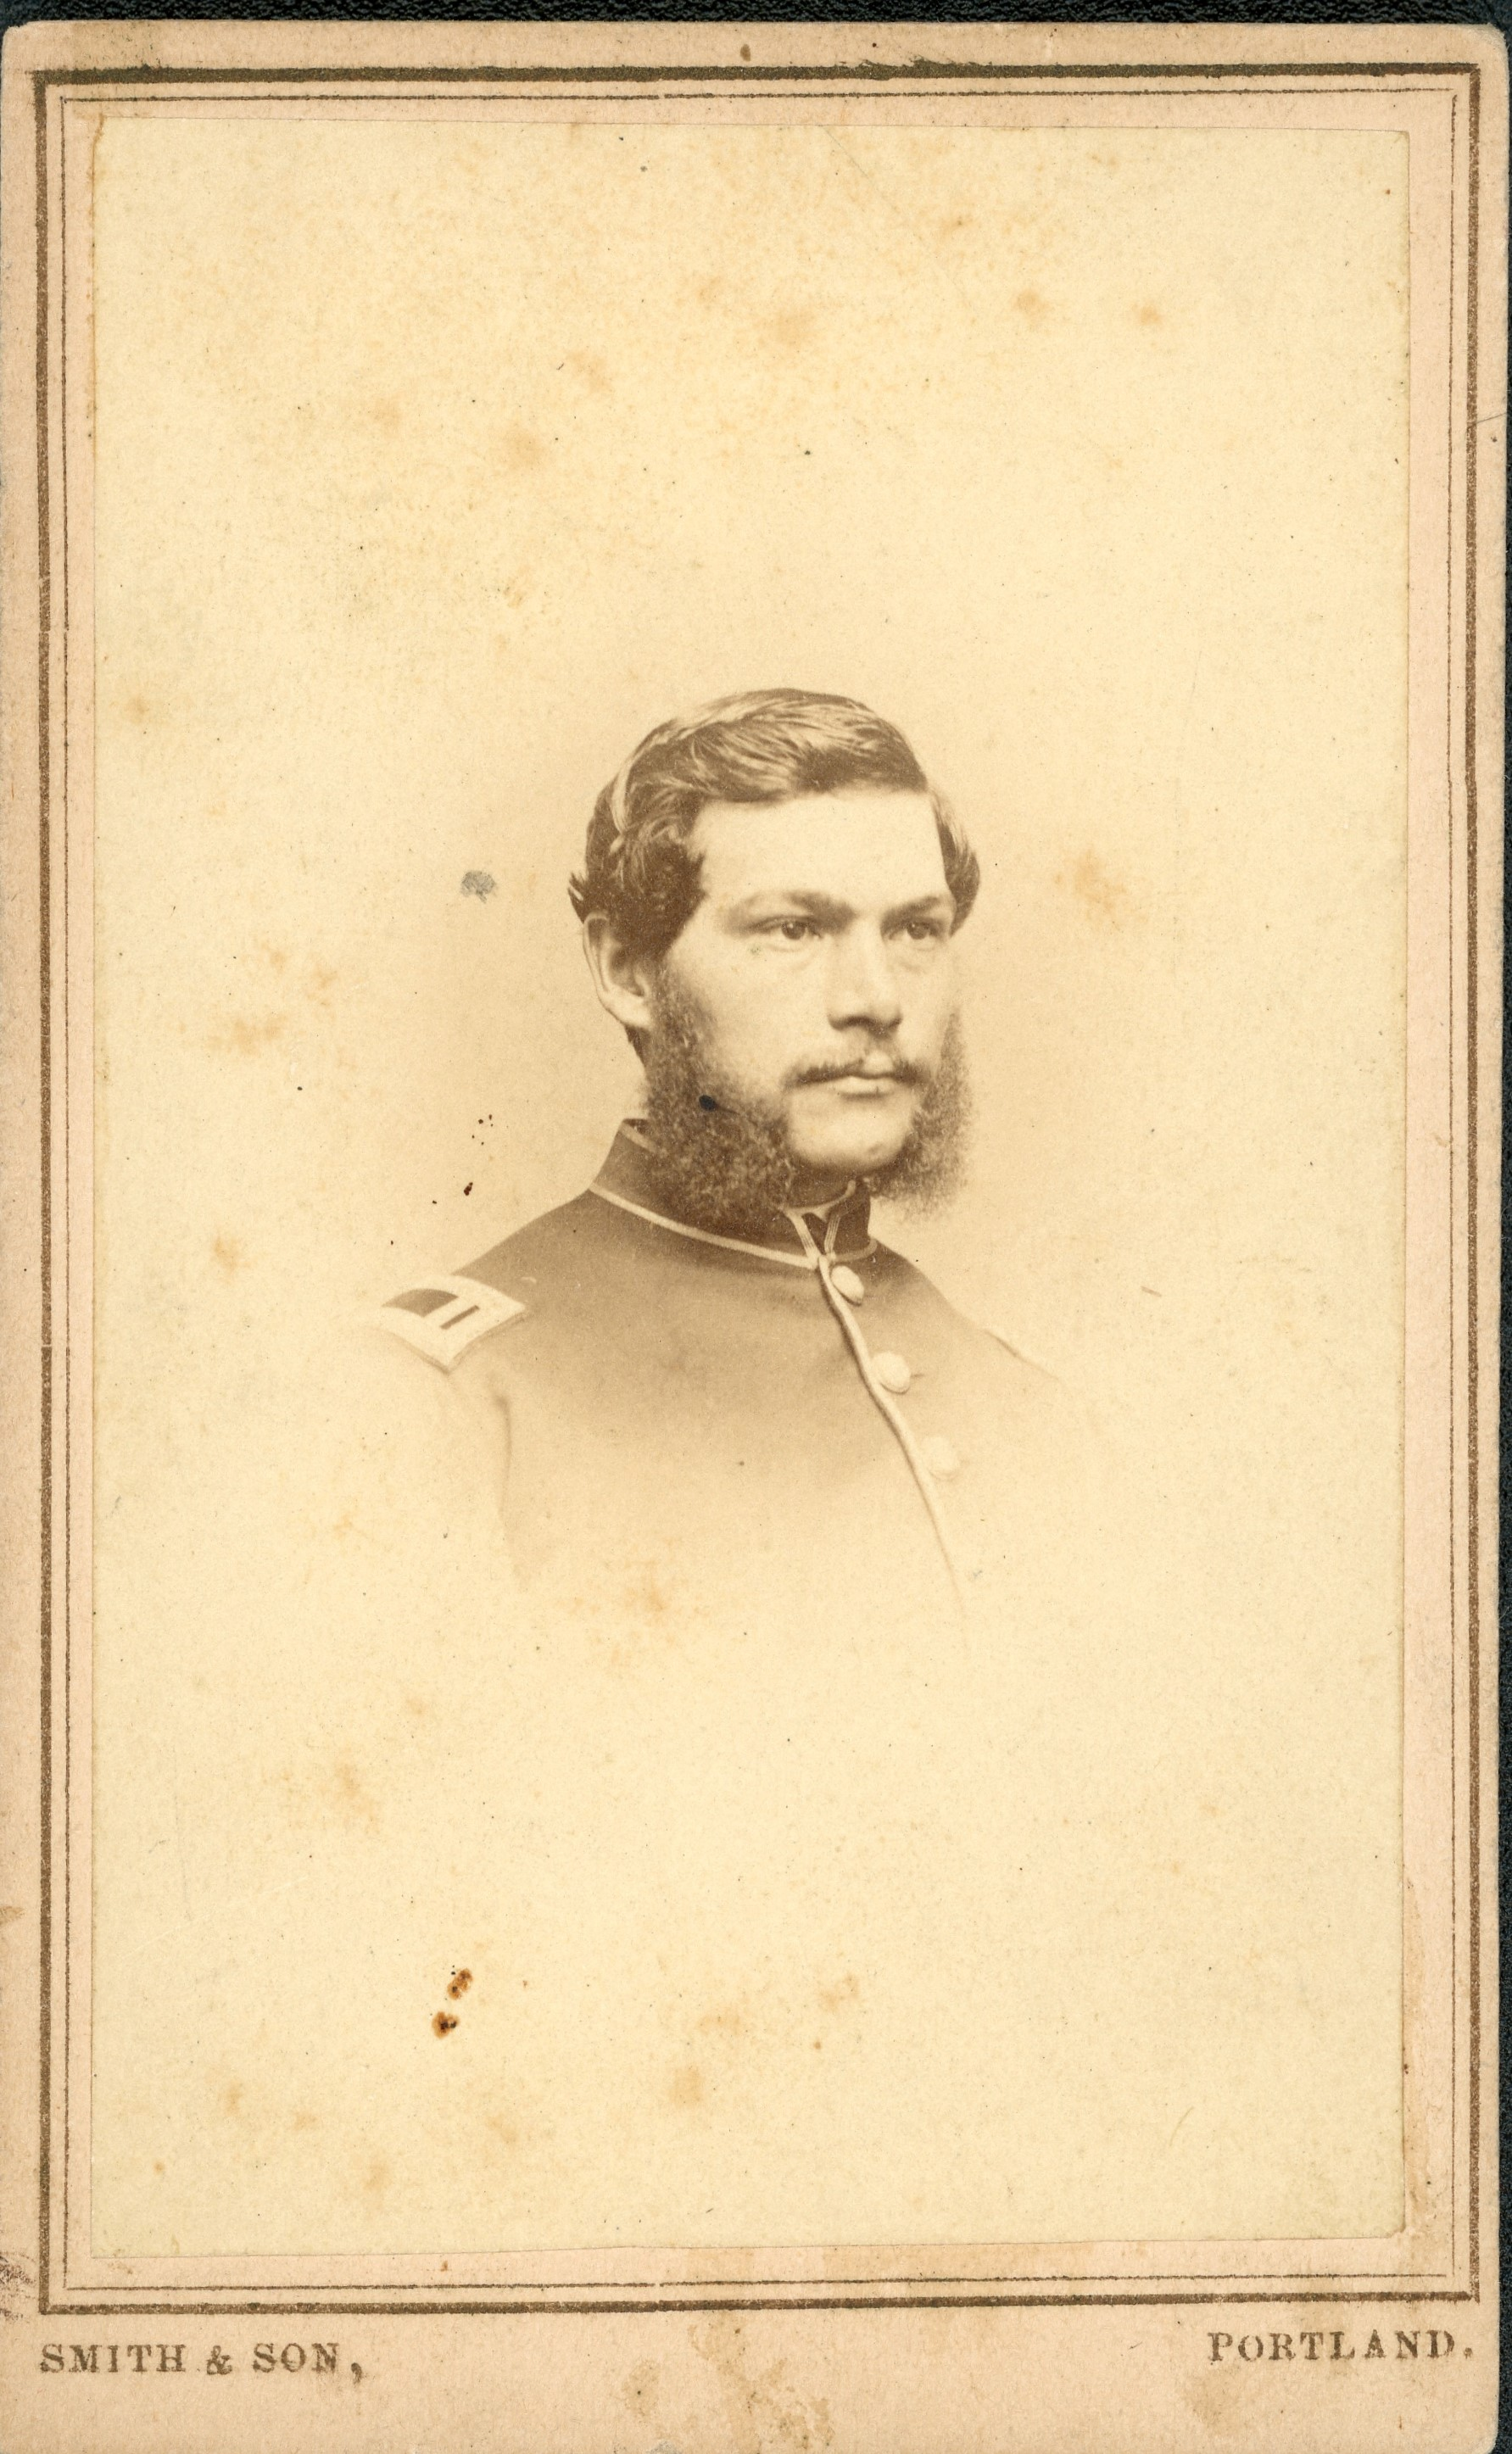 George Bicknell Carte De Visite From The Collection Of Fifth Maine Regiment Museum